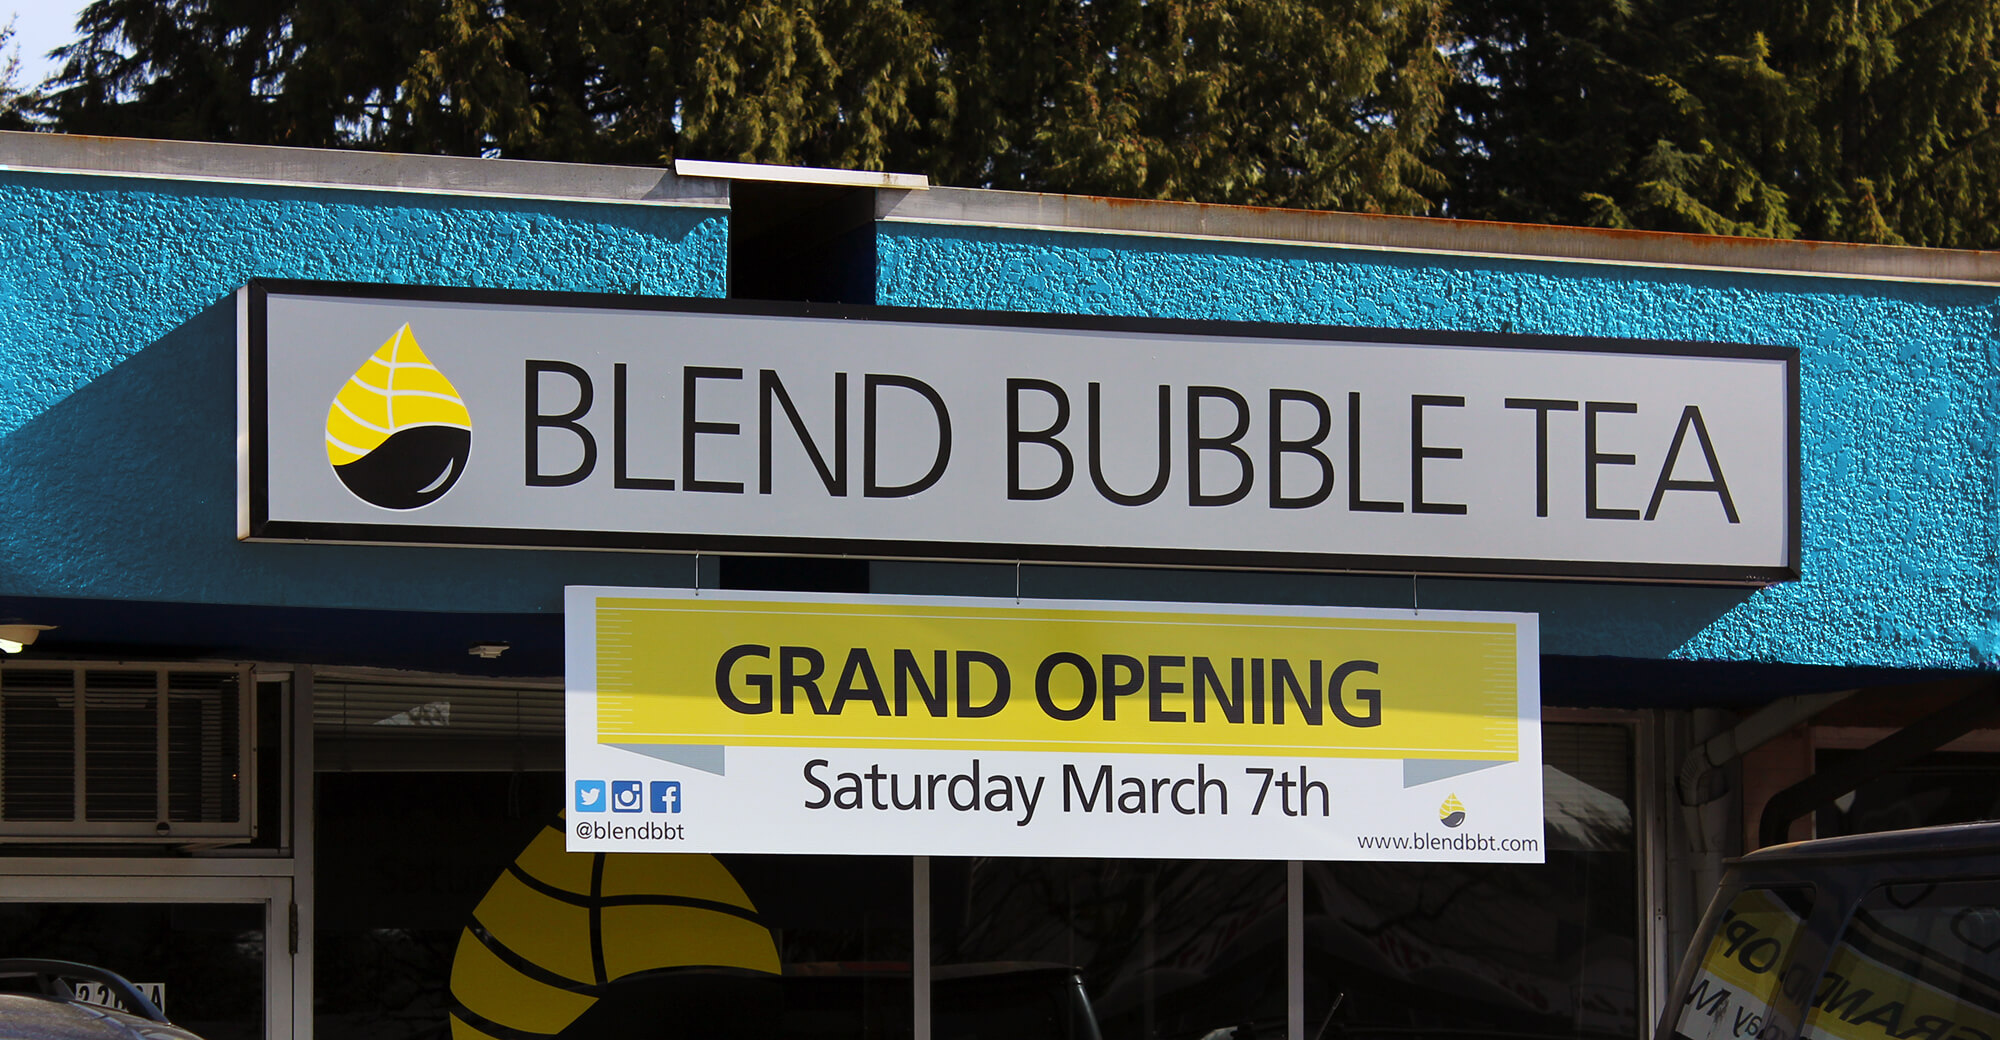 Blend Bubble Tea Grand Opening Signage